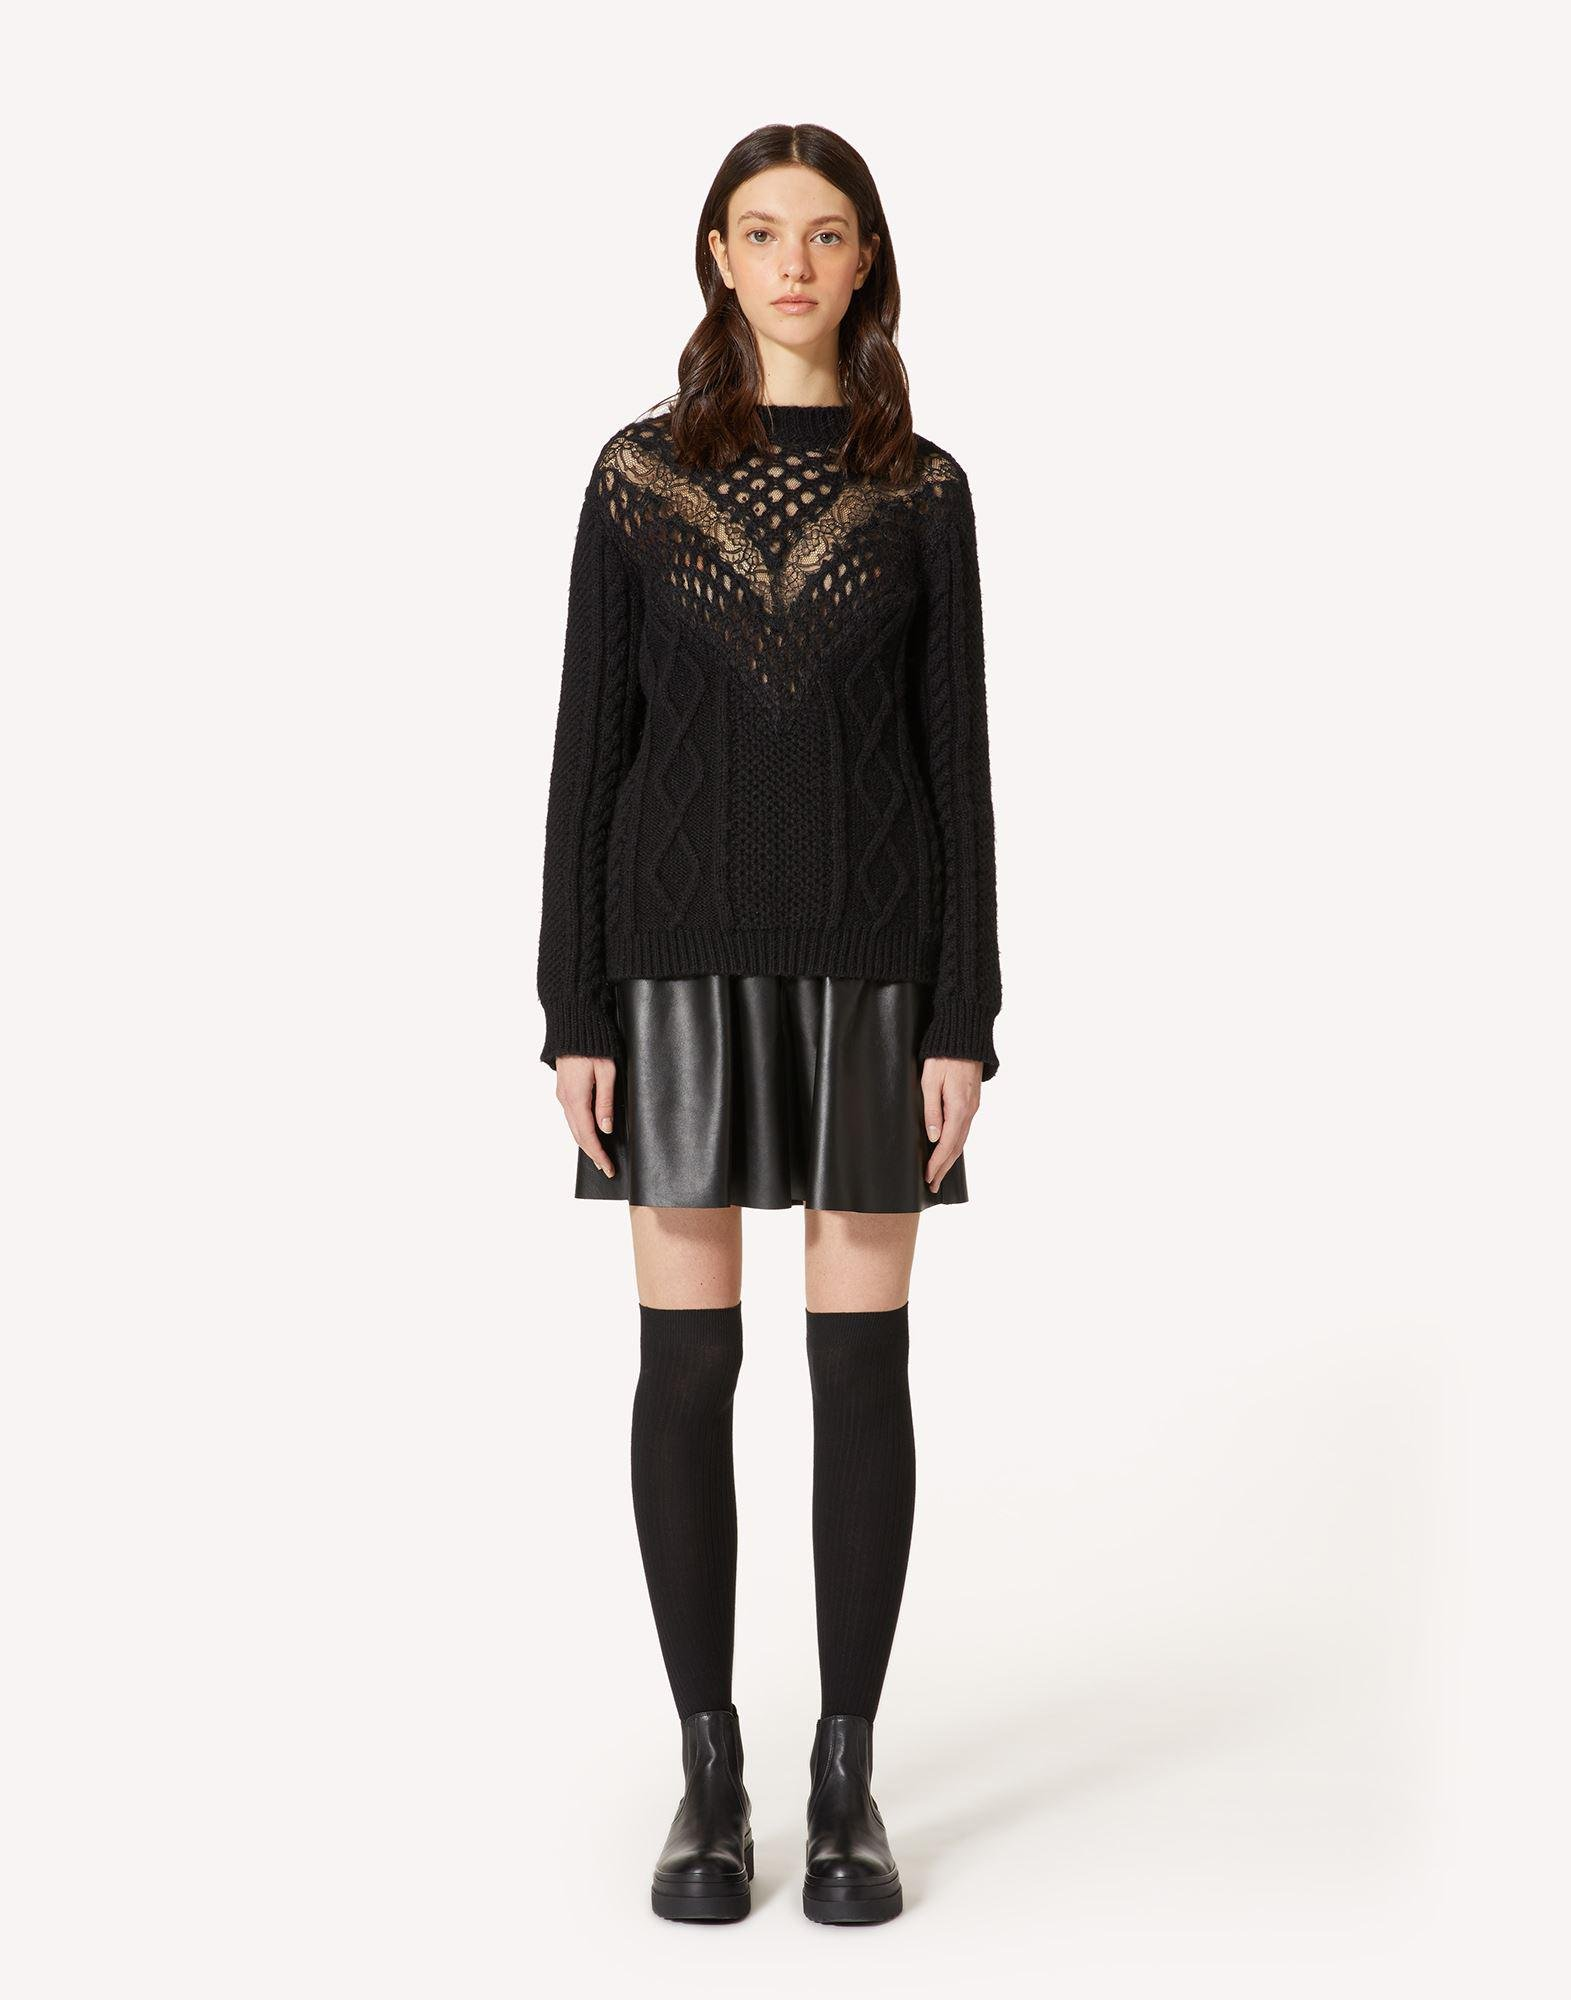 MOHAIR-BLEND AND LACE SWEATER